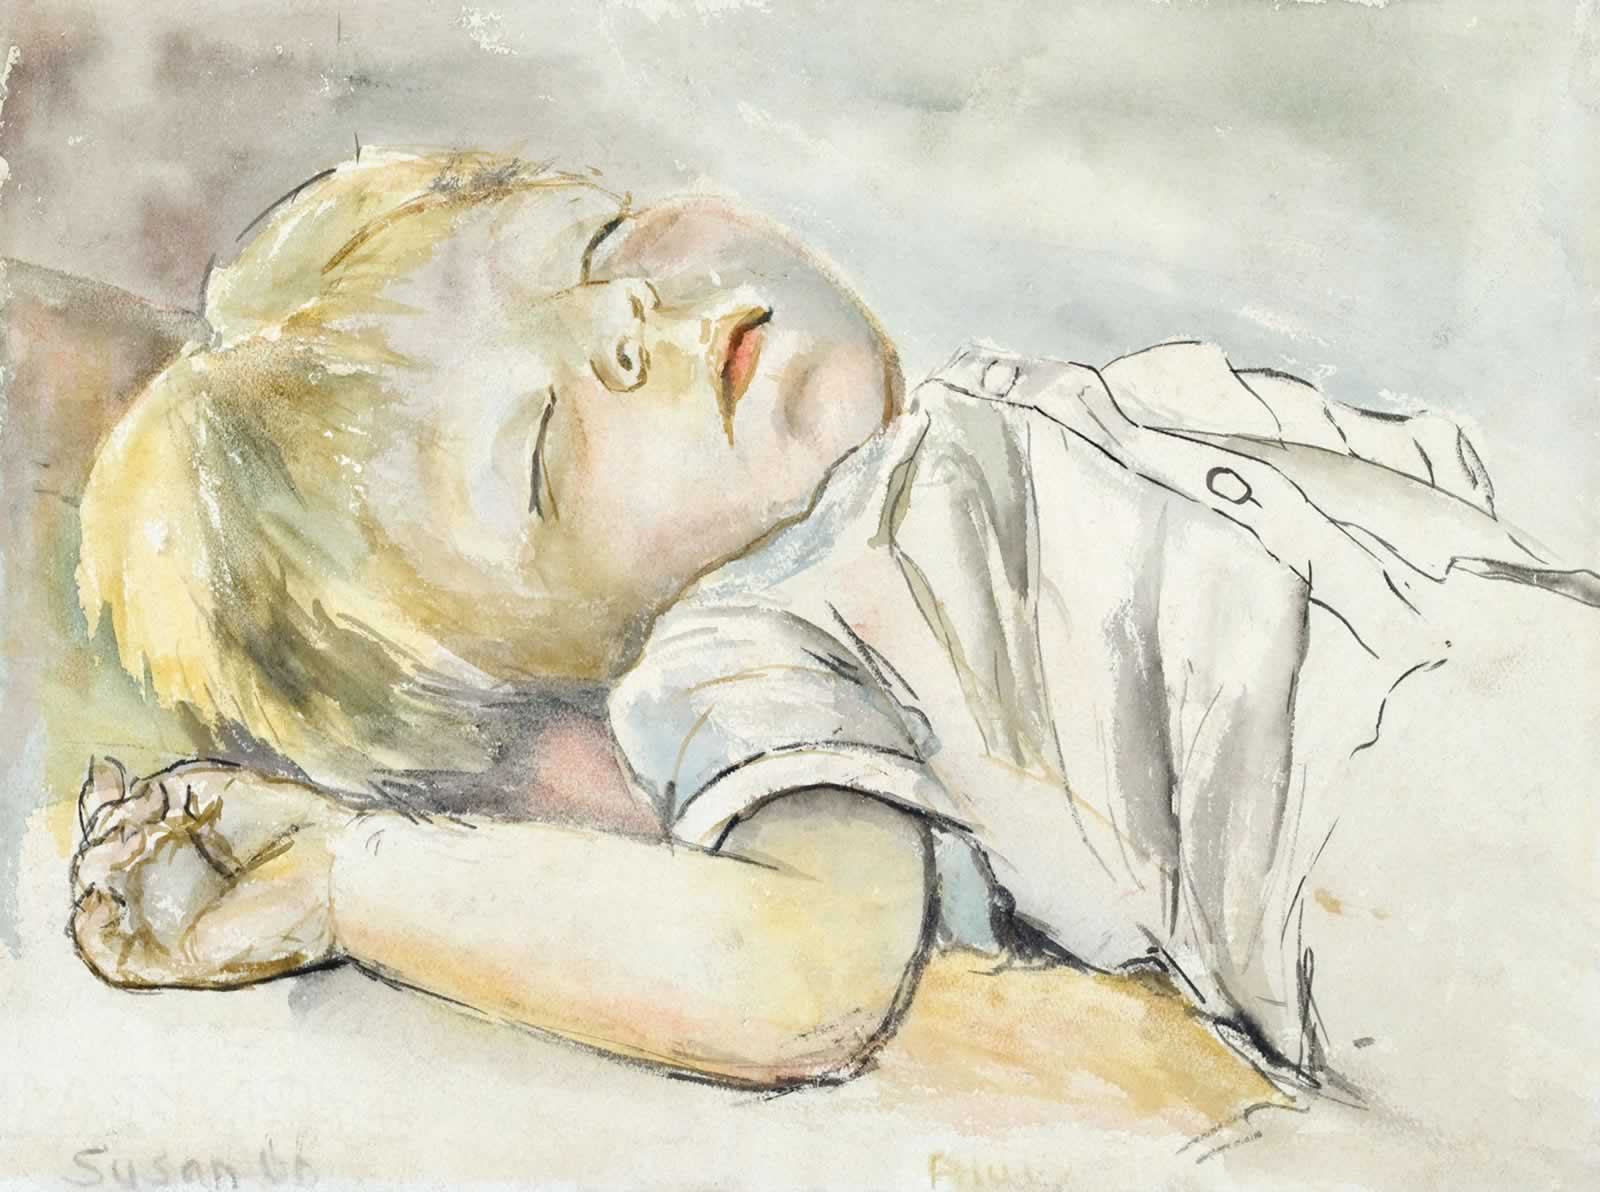 One-year-old Paul, sleeping by Susan Dorothea White